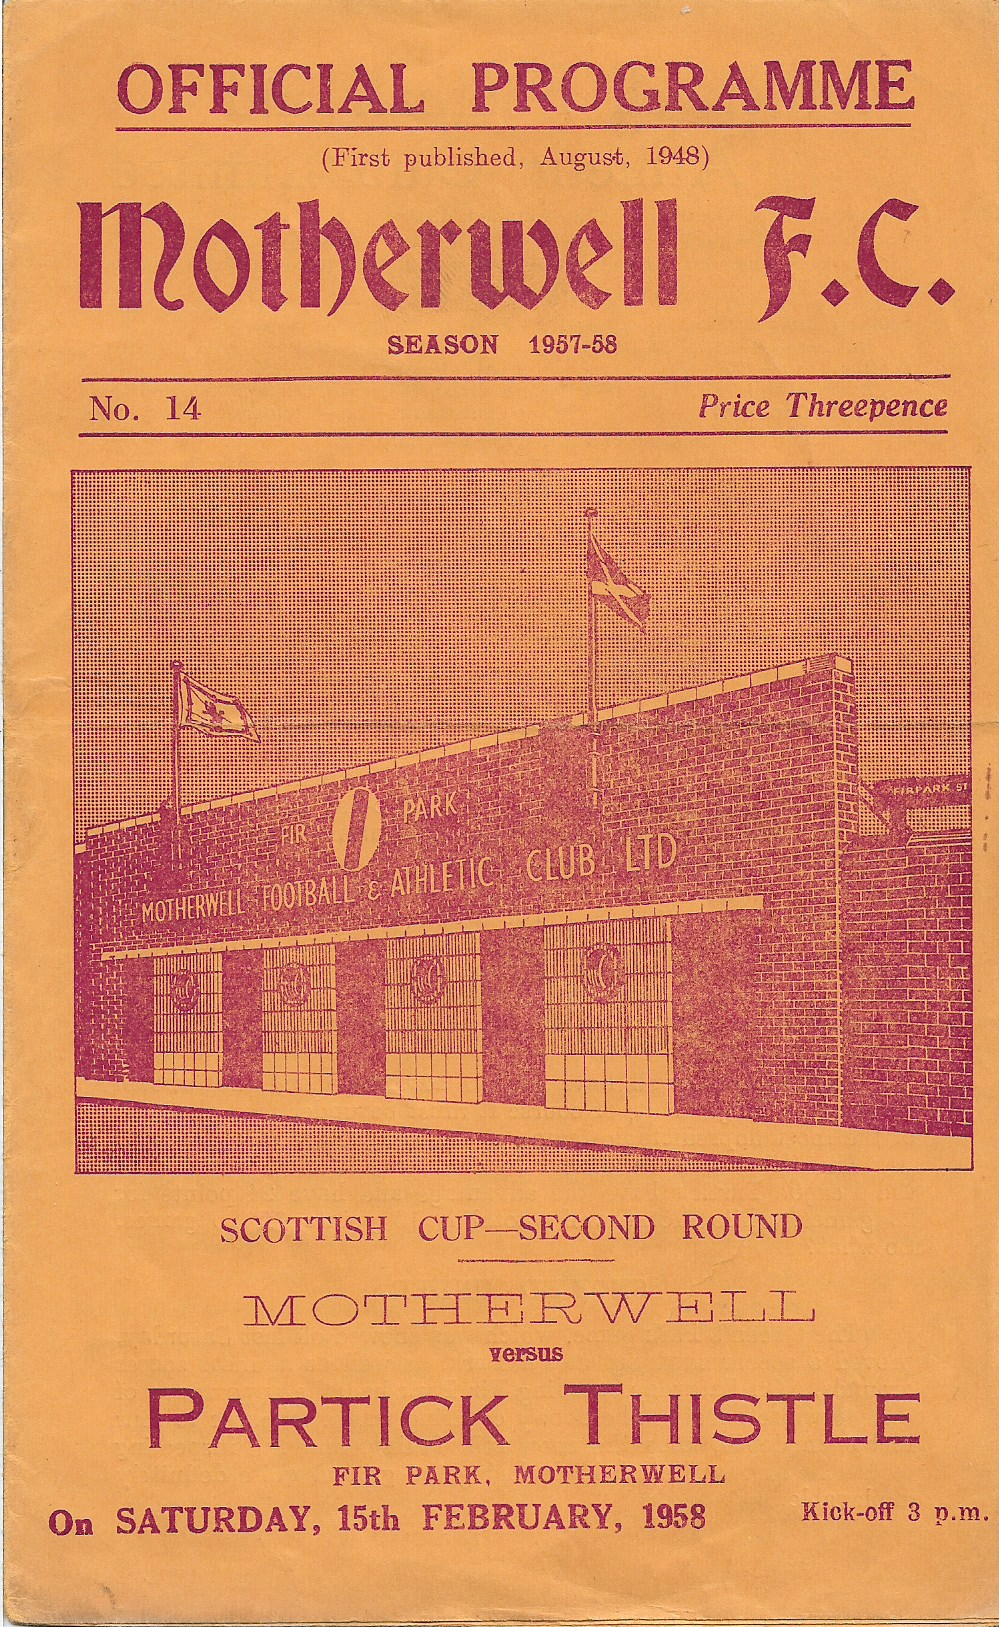 Motherwell vs Partick Thistle - Programme Cover